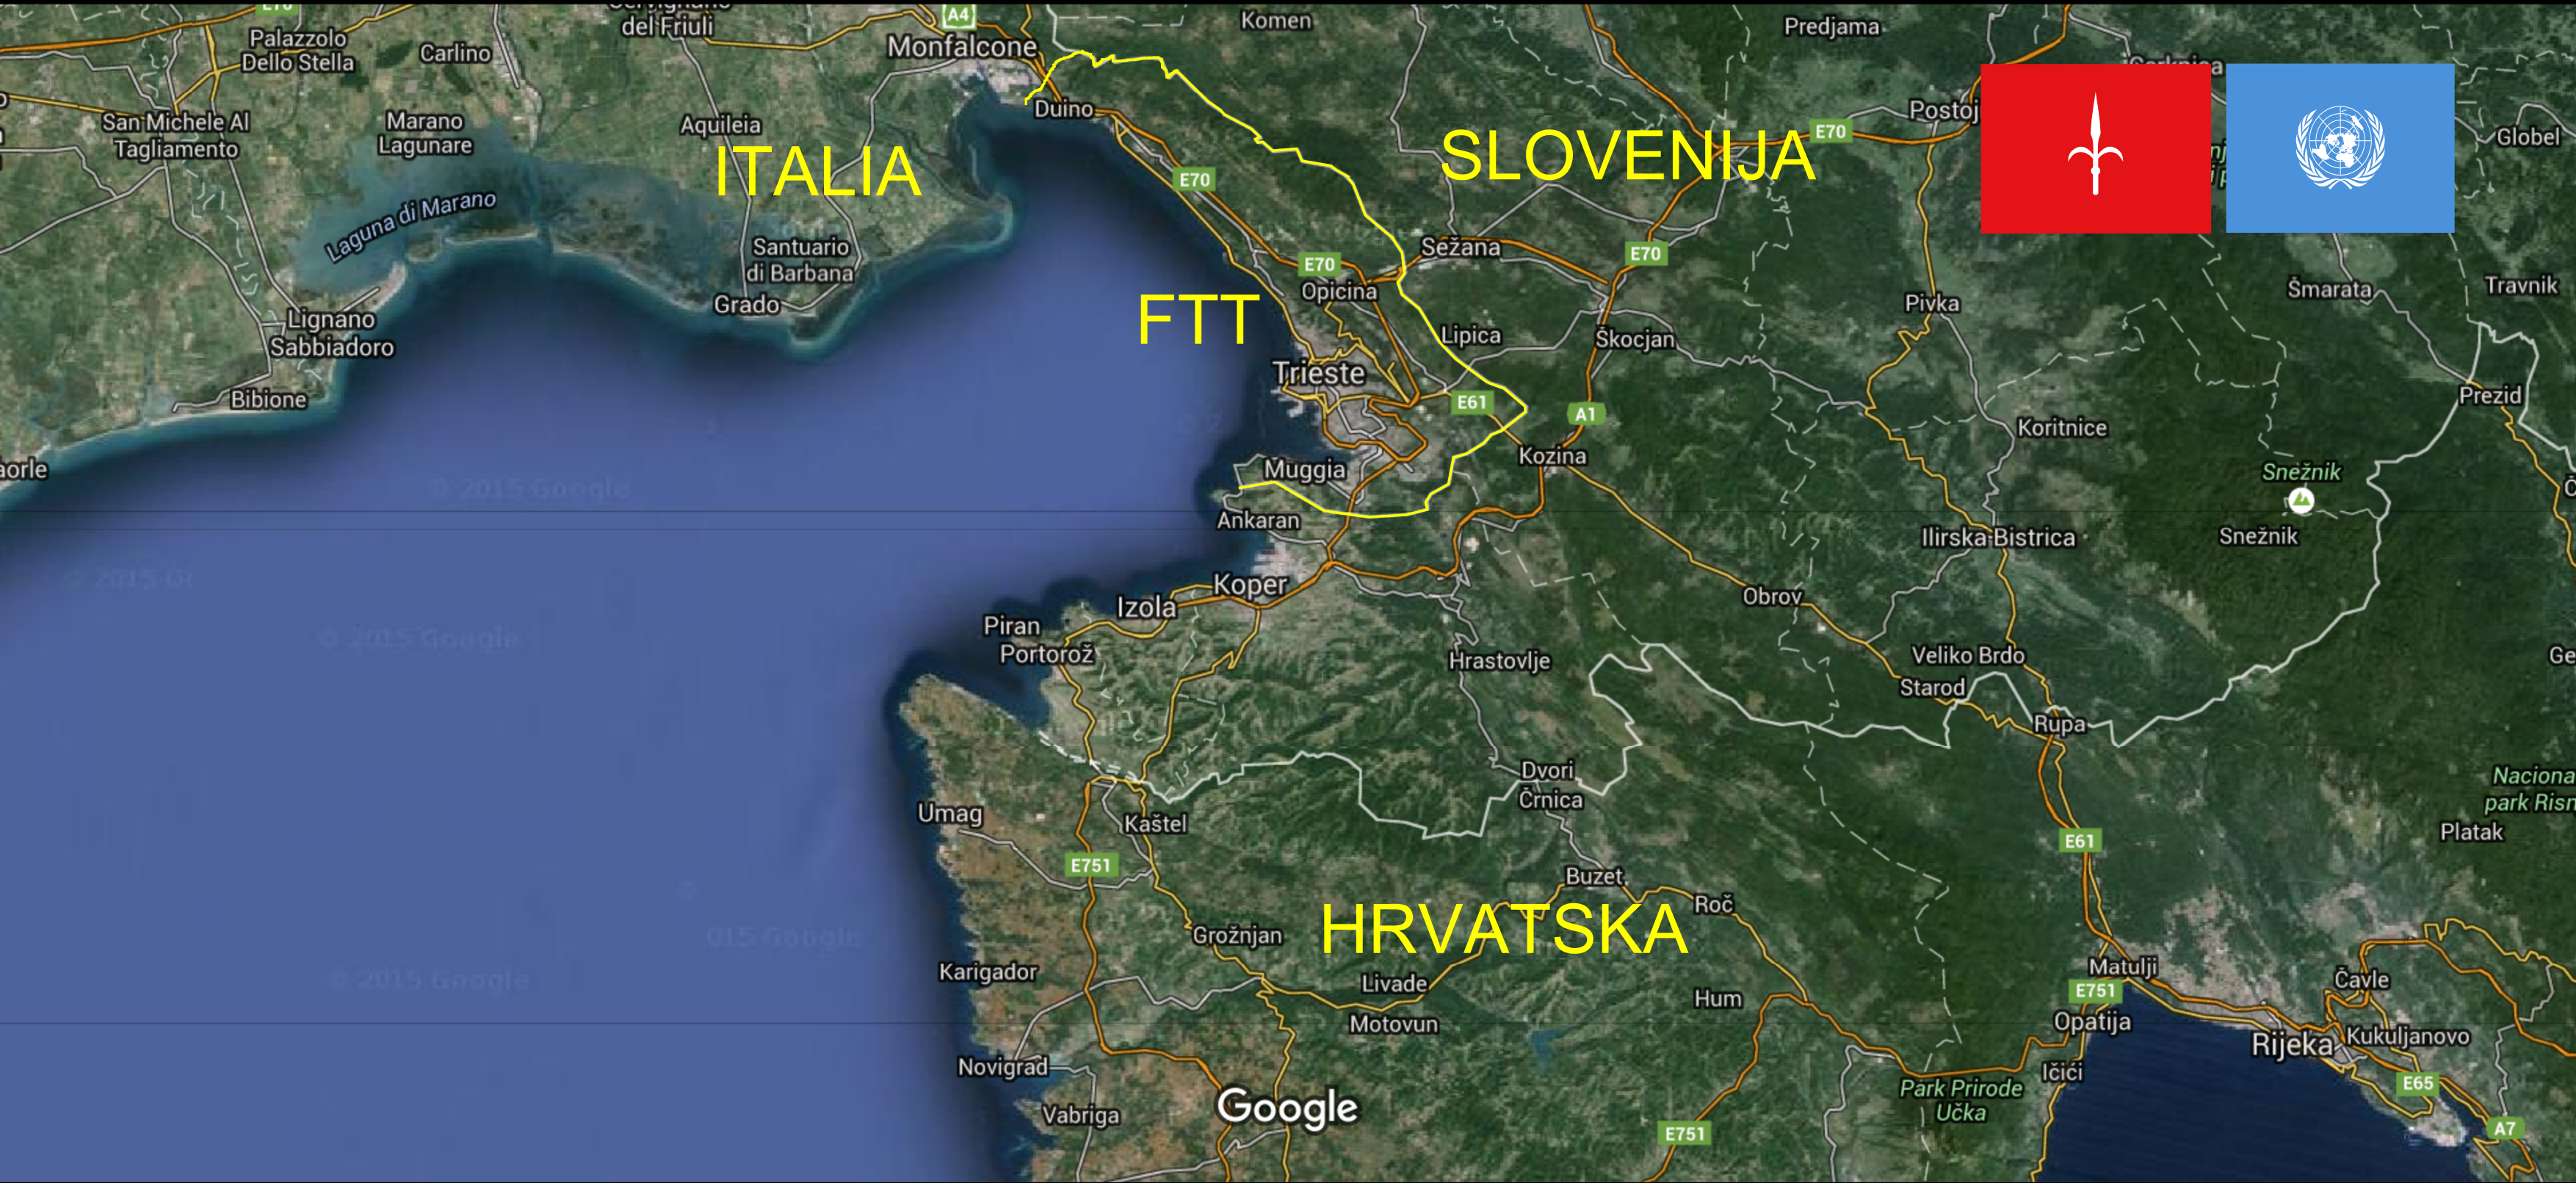 The present-day Free Territory of Trieste